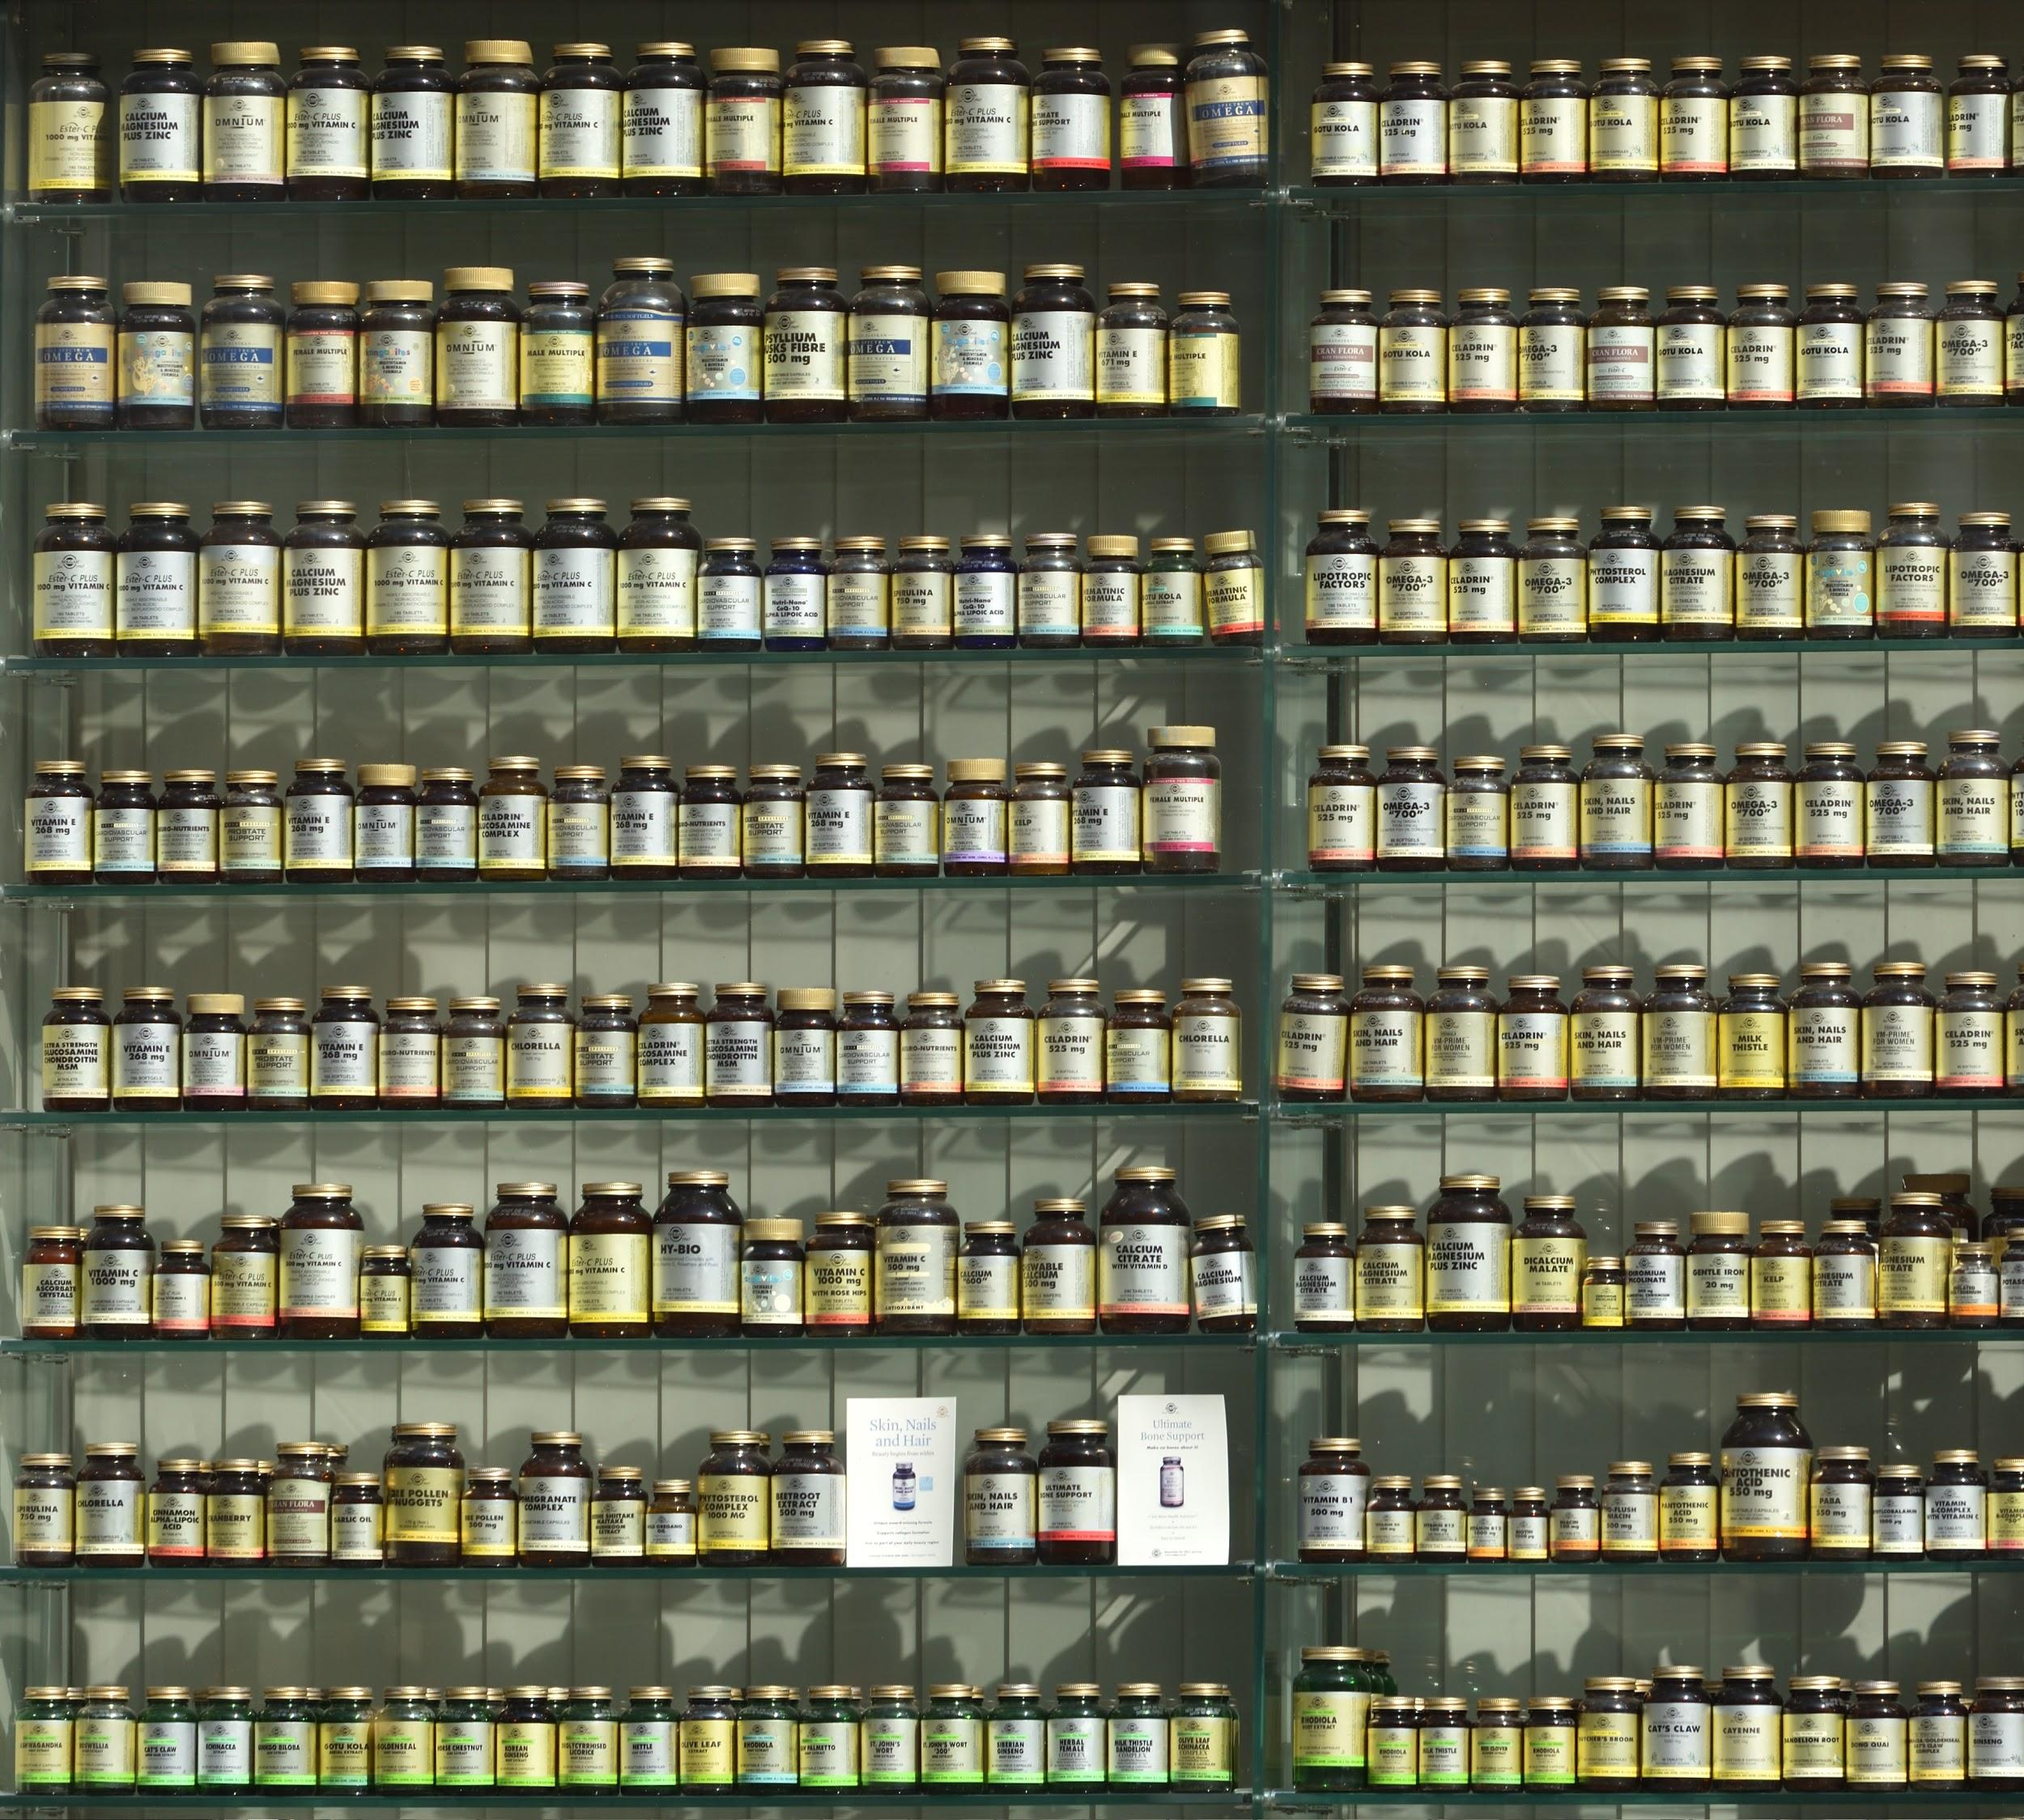 Rows and rows of different supplements.